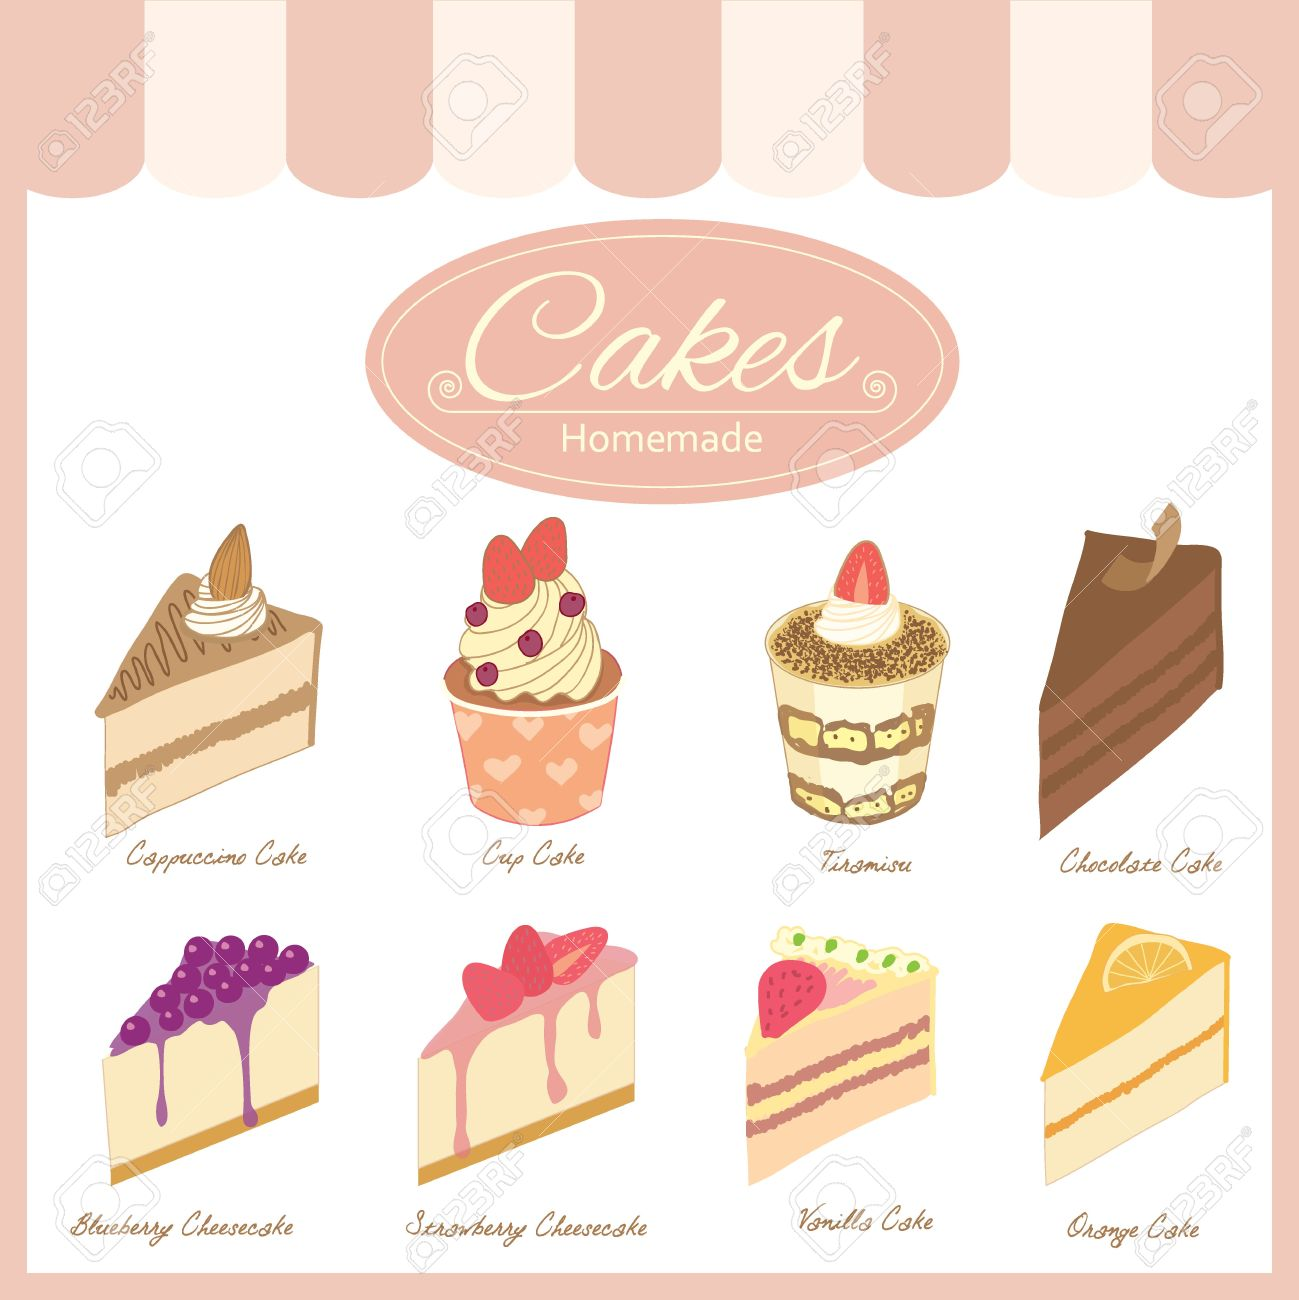 1299x1300 Drawing Bakery Cafe.the Cakes Show On Shop Window And Decorate